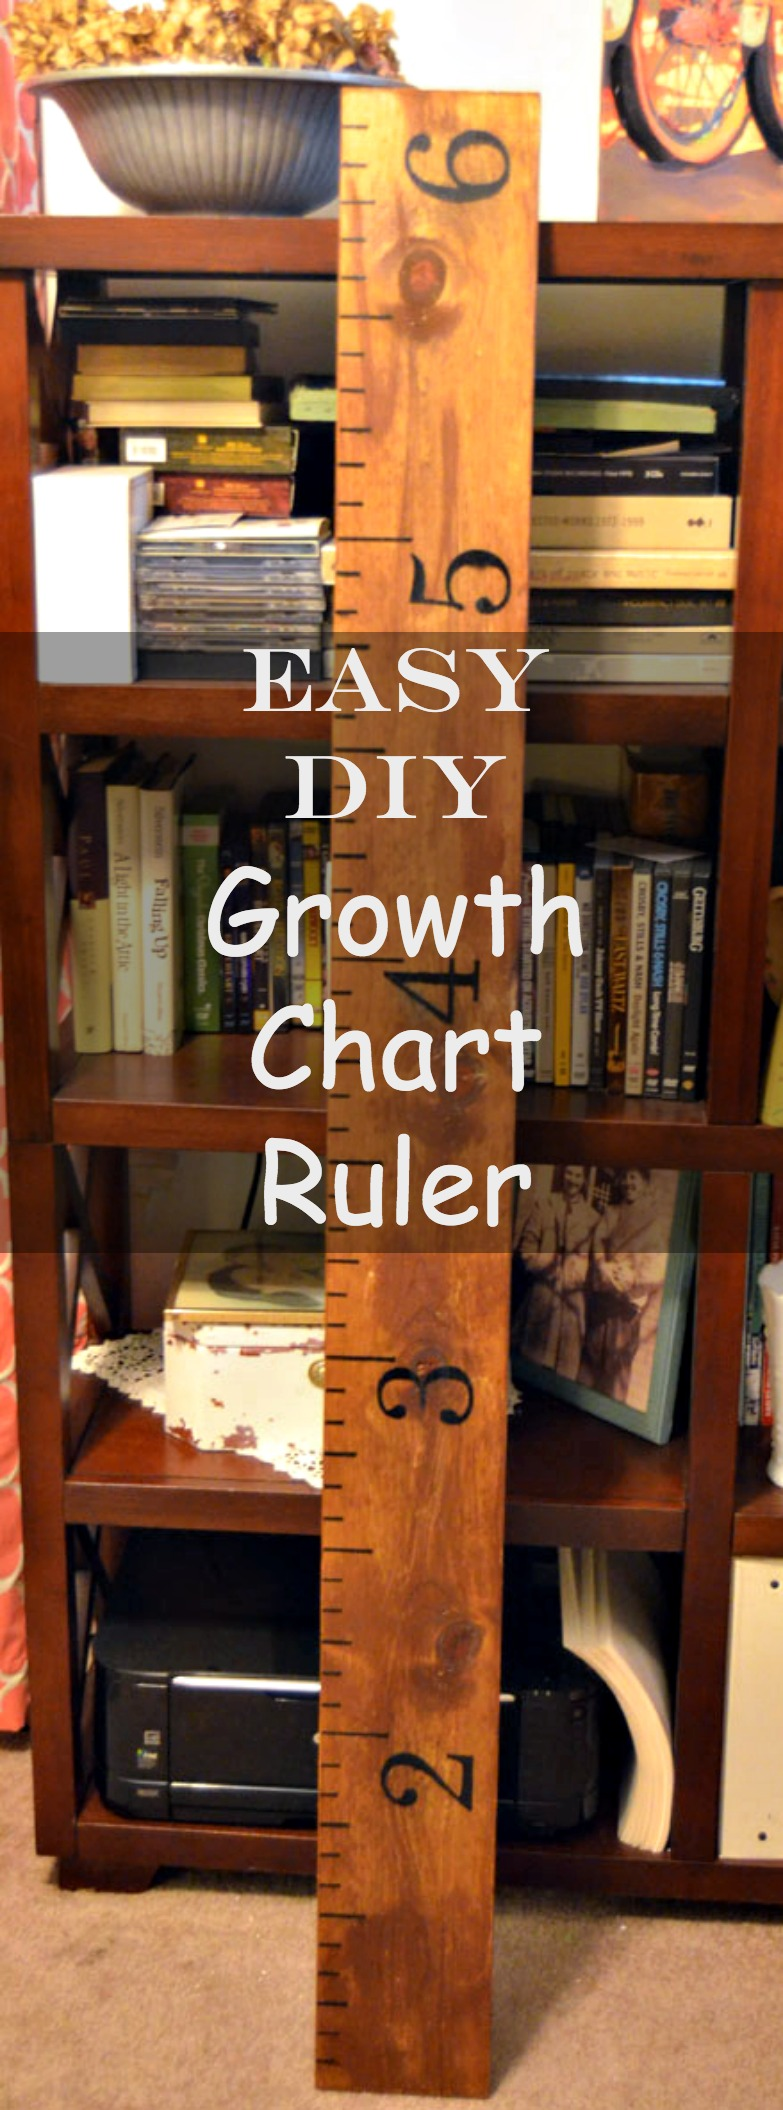 How to make a growth chart ruler create and babble how to make growth chart ruler nvjuhfo Images